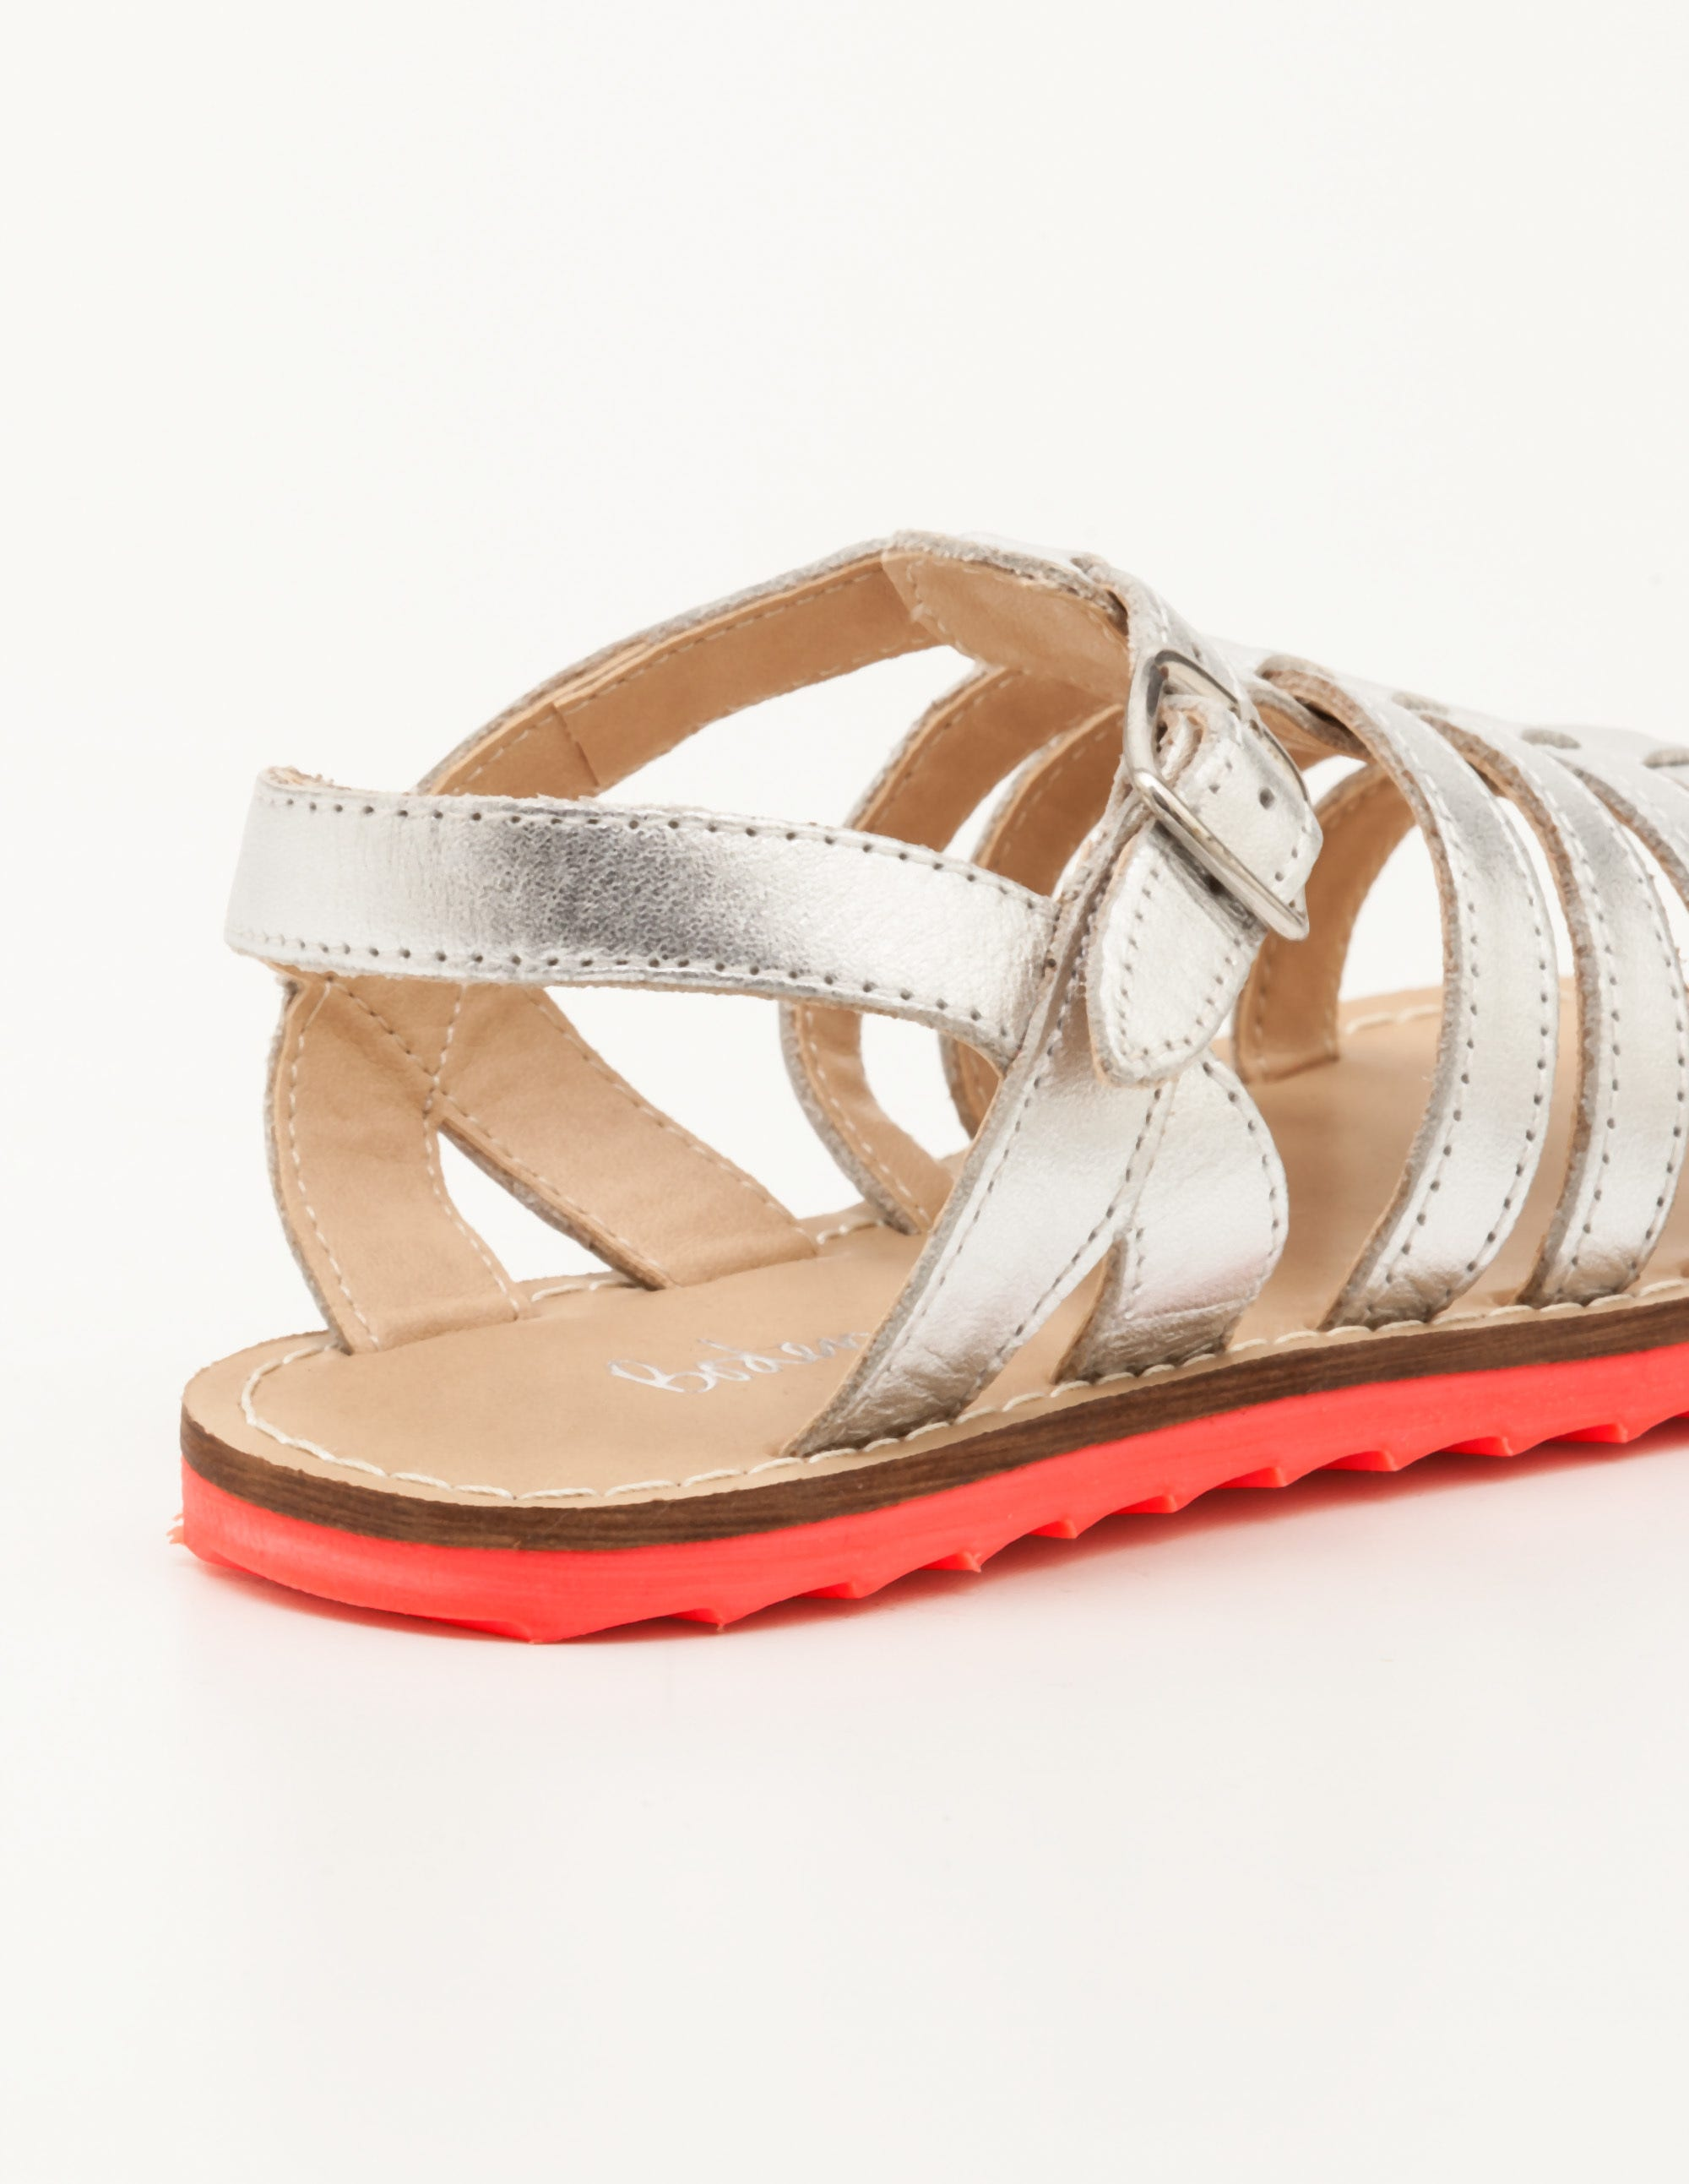 d9d8e2a4631b Leather Gladiator Sandals - Silver Metallic